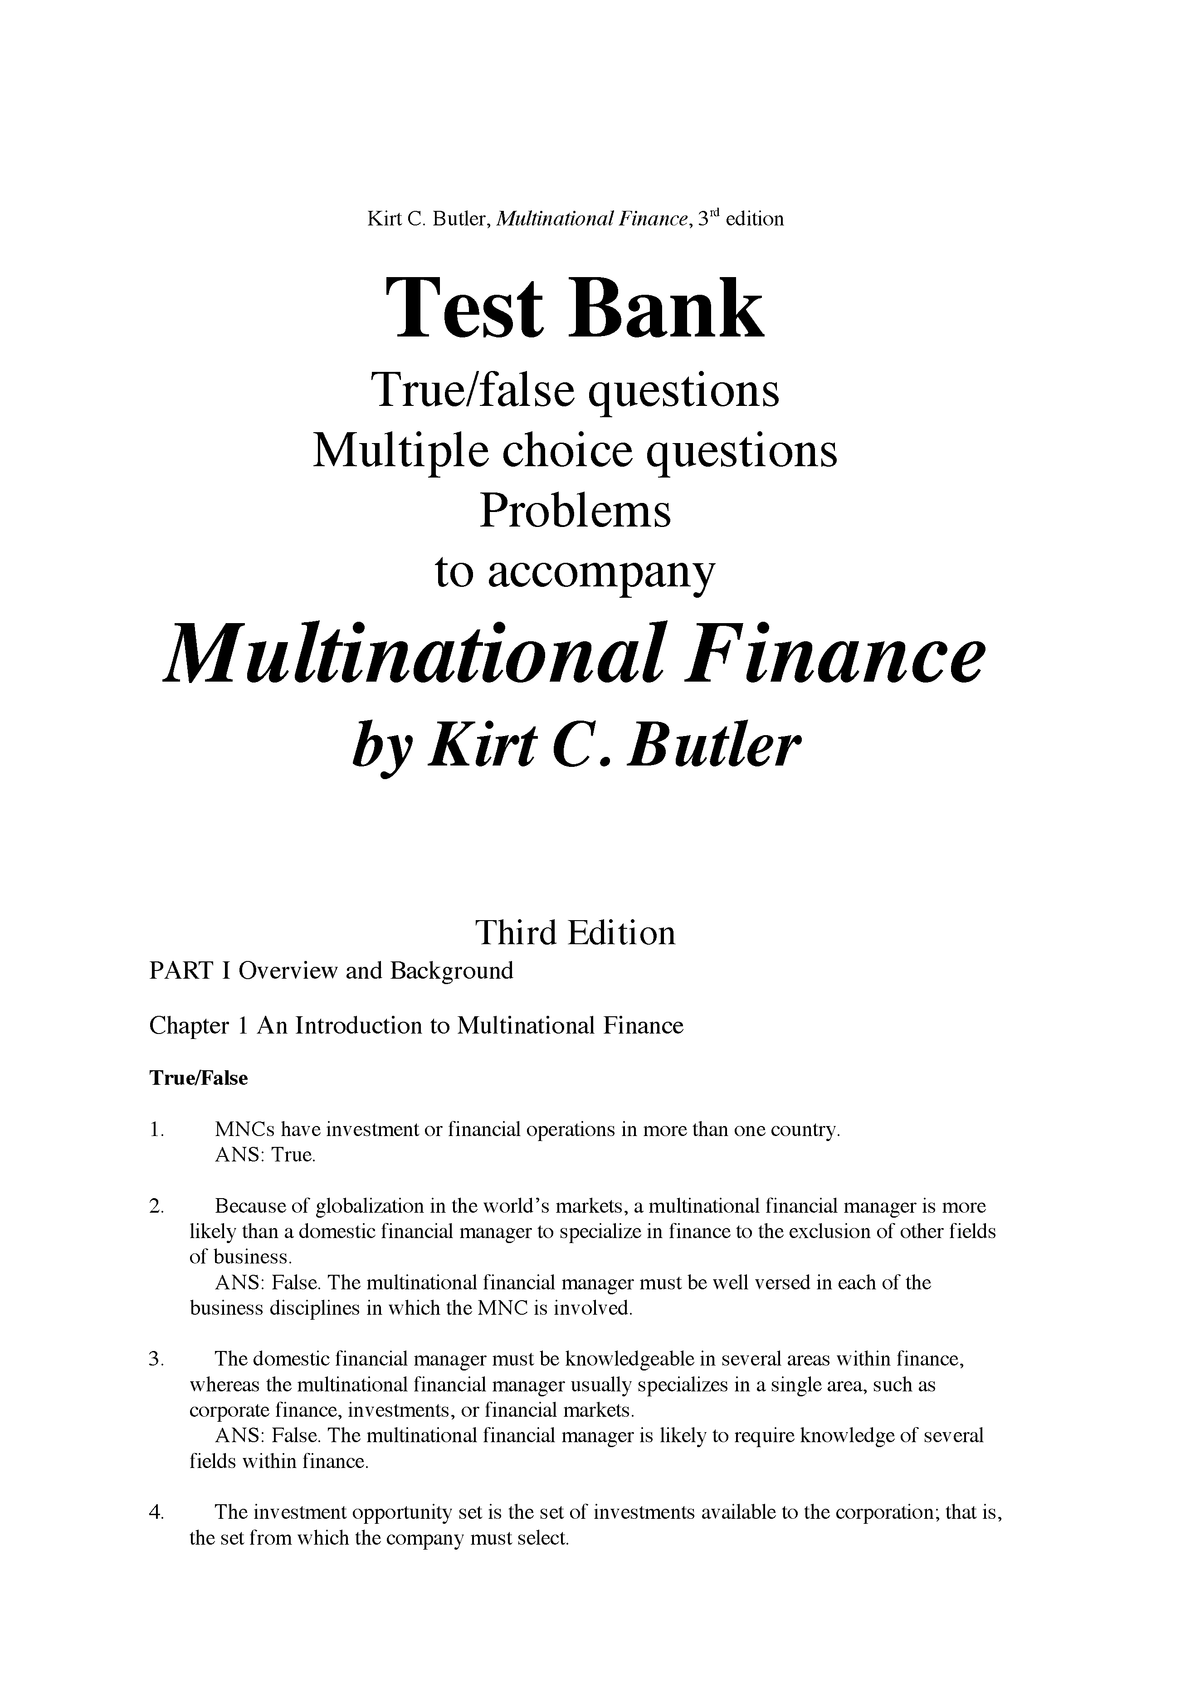 chapter 2 test bank